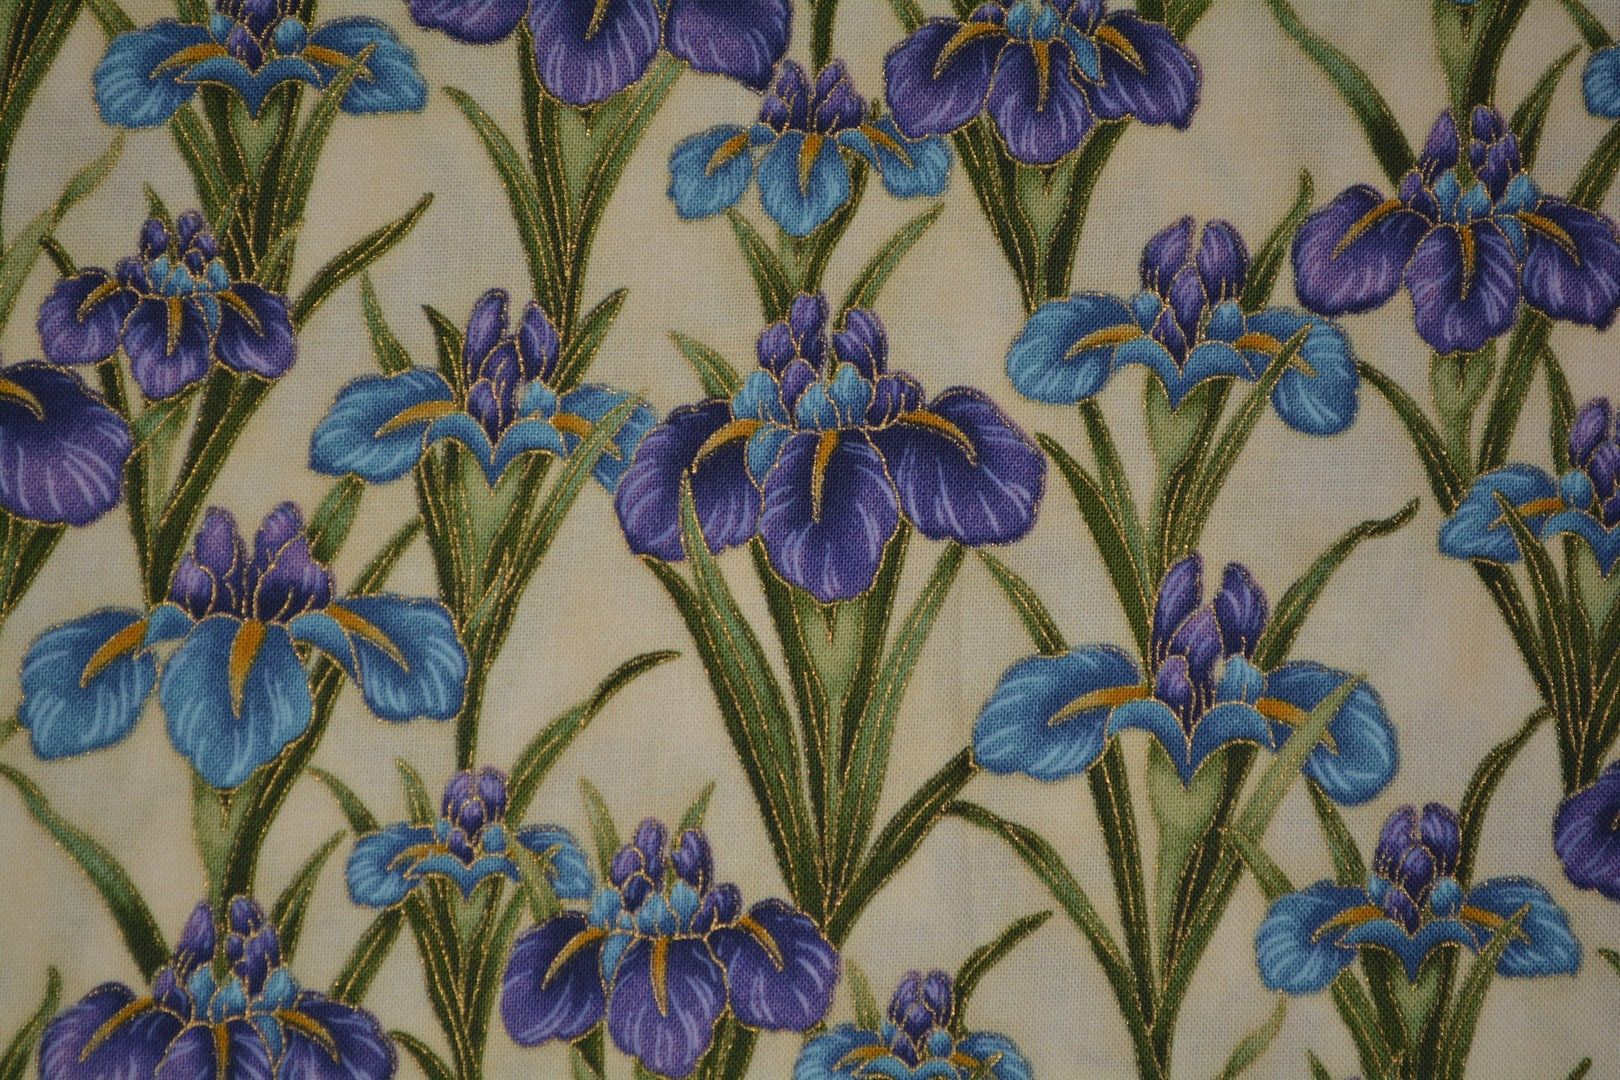 Japanese Iris Flowers Fabric Robert Kaufman Imperial Collection Asian Floral Blue Purple Irises By Sewlaviefabrics On In 2020 Purple Iris Iris Flowers Beautiful Print